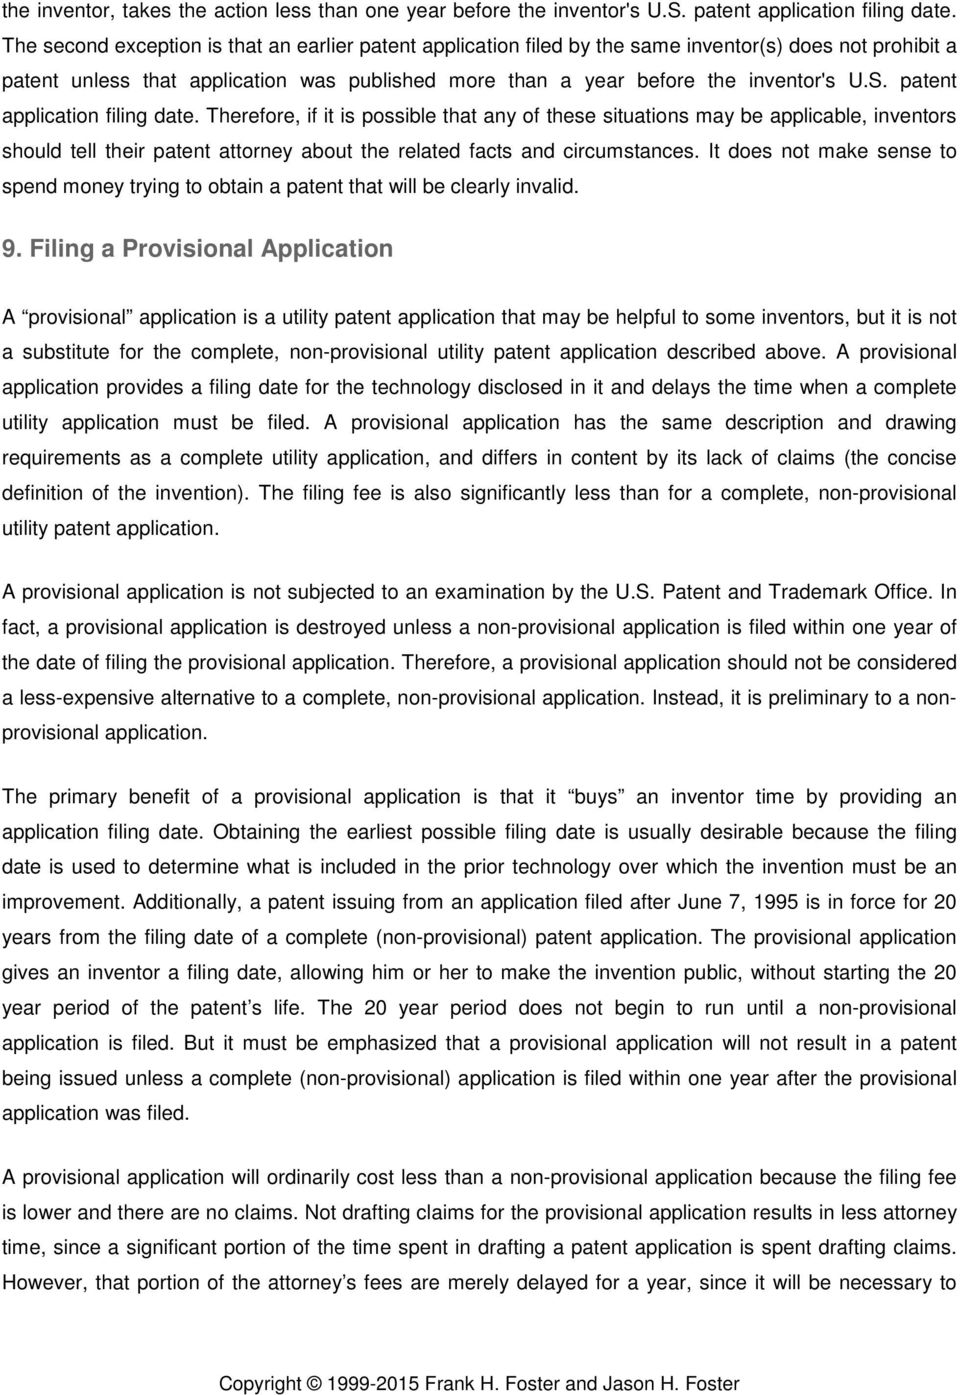 patent application filing date. Therefore, if it is possible that any of these situations may be applicable, inventors should tell their patent attorney about the related facts and circumstances.